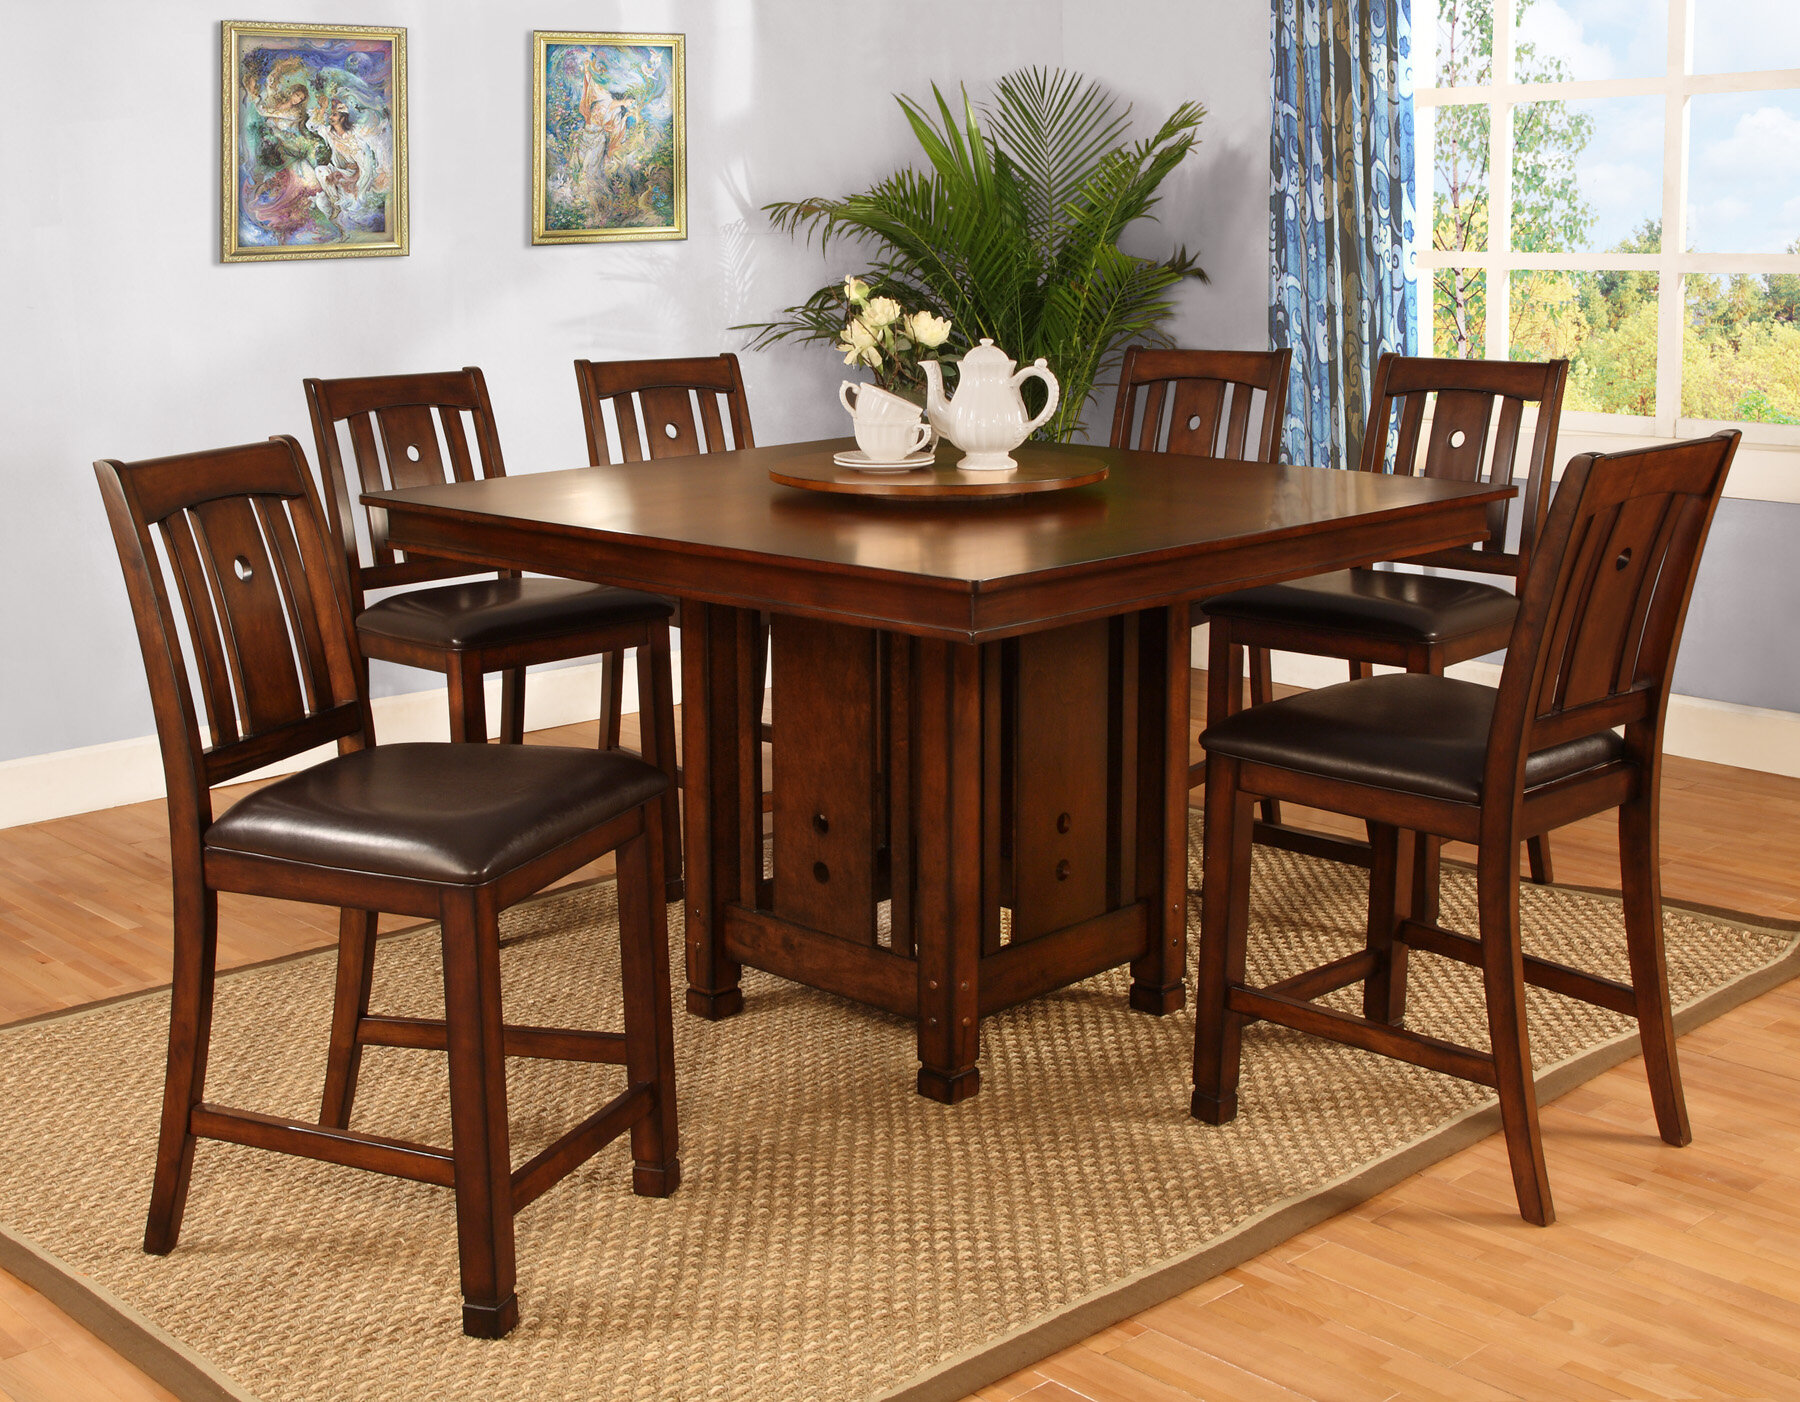 Best quality furniture 7 piece counter height dining set for Best quality dining tables